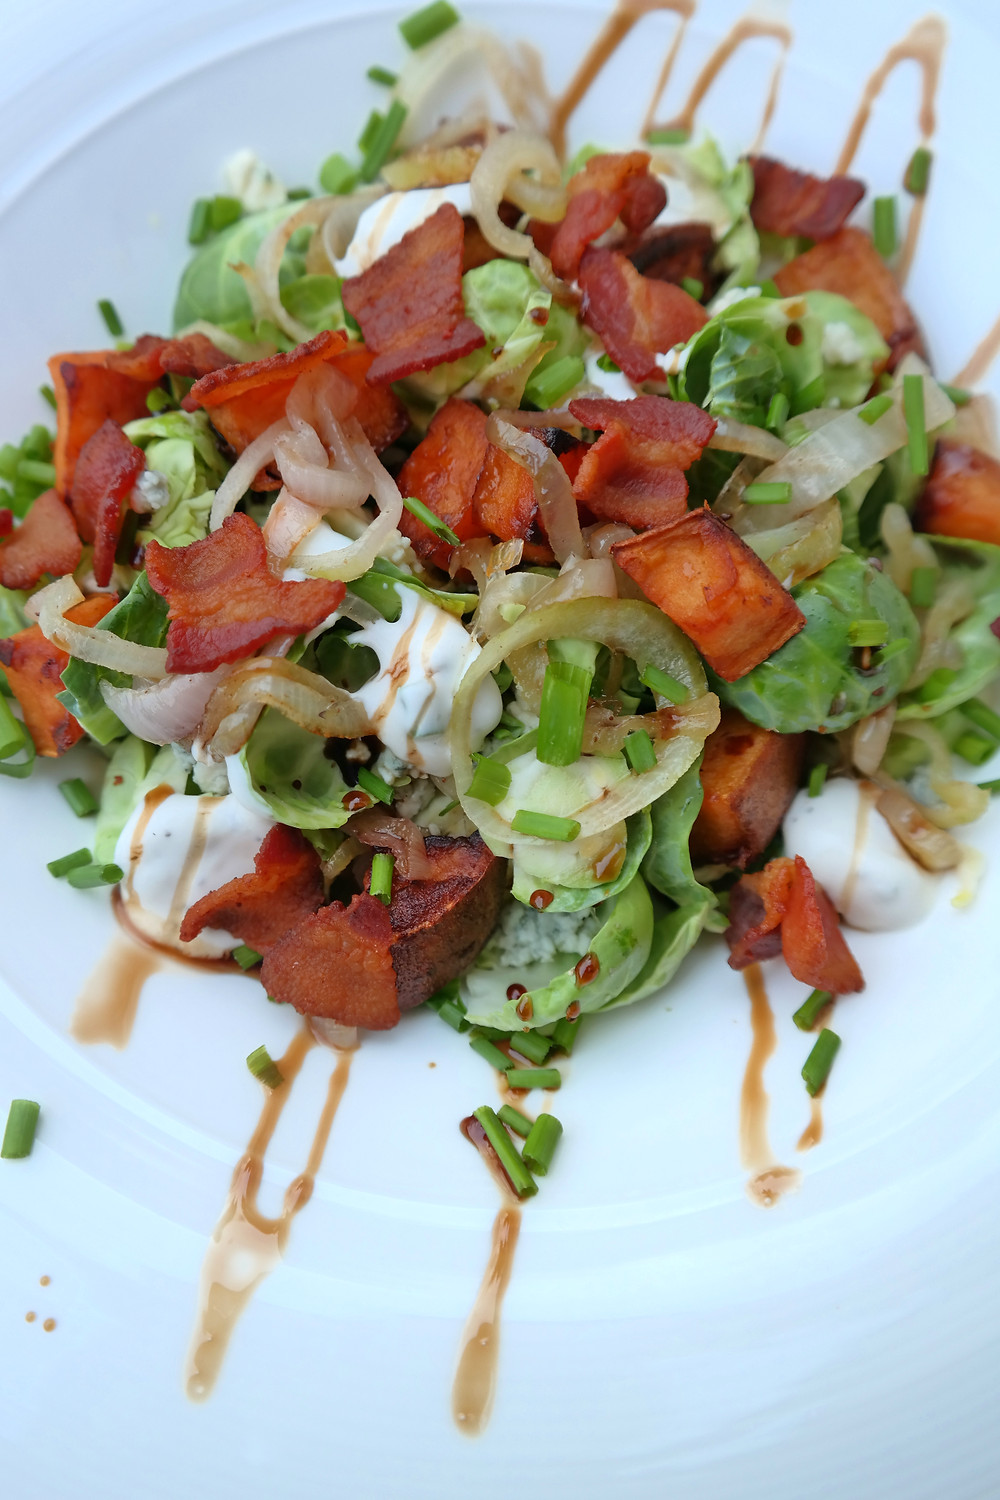 Brussel Salad with sautéed Shallots and Sweet Potato, topped with Crispy Bacon and Balsamic Reduction | eatlovegarlic.com @eatlovegarlic